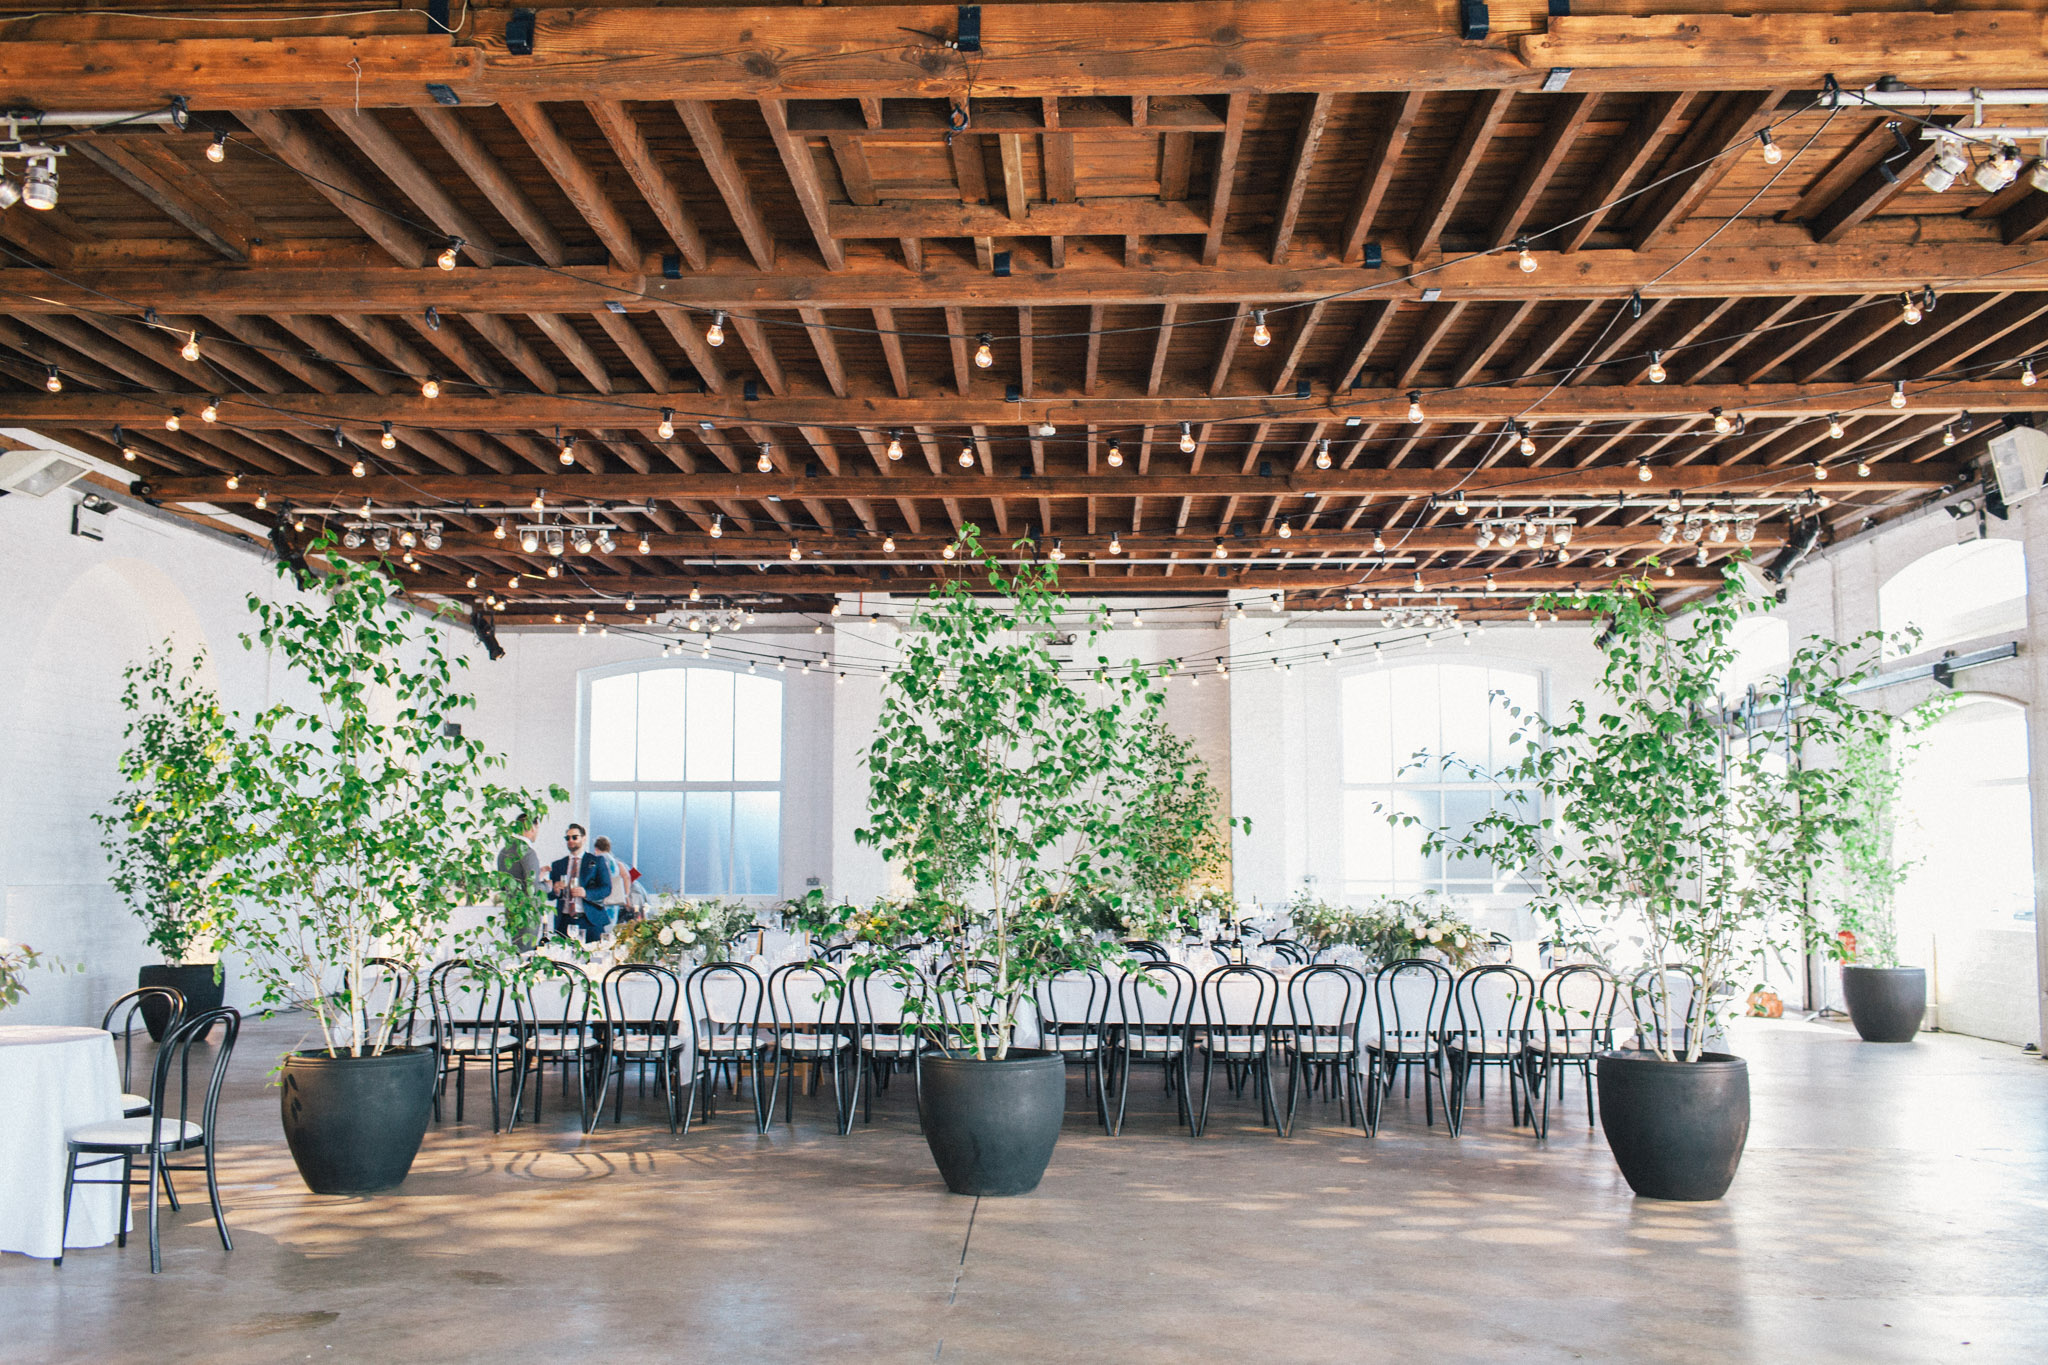 Venue dressed with hired greenery - with the addition of 6 small trees it is transformed into a cooler space